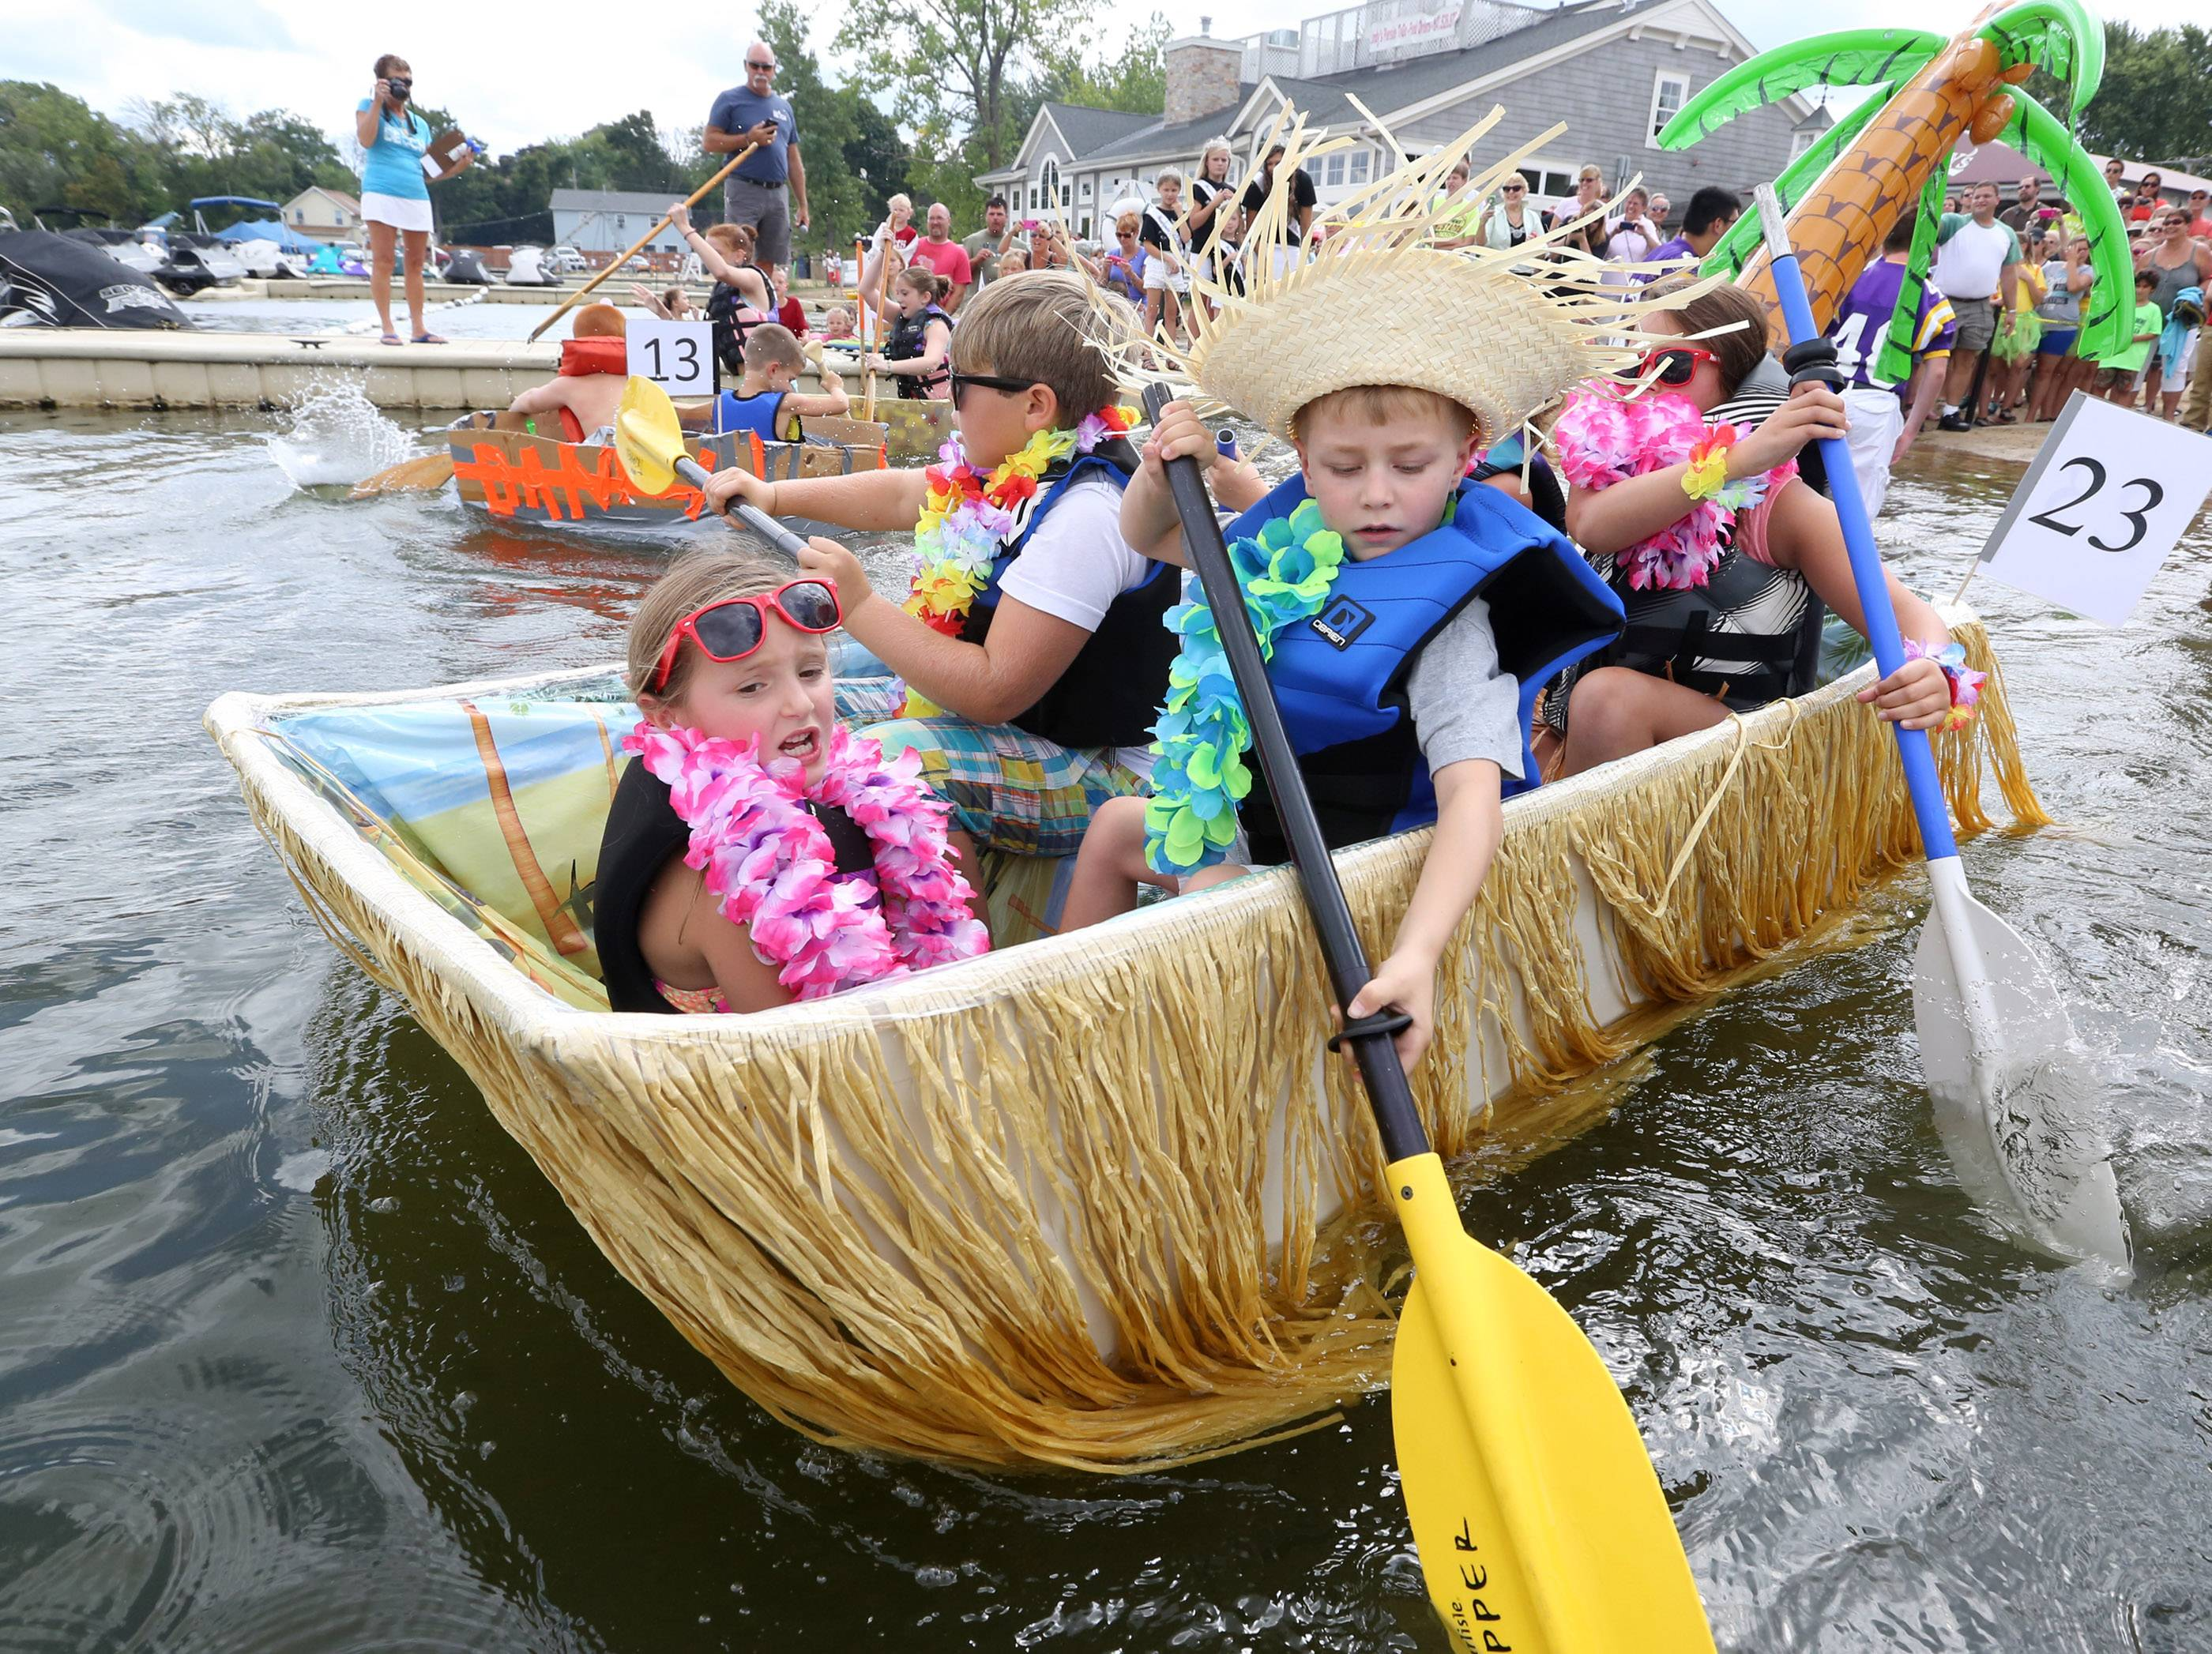 Besides trying to win the race, these sailors, clockwise from left, Maia Cordova, 7, of Wauconda, Max Testa, 9, of Cary, Laindy Cordova, 7, of Wauconda, and Austin Miller, 7, of Grayslake, also competed for best dressed at Saturday's Cardboard Boat Races at Wauconda's Bangs Lake.